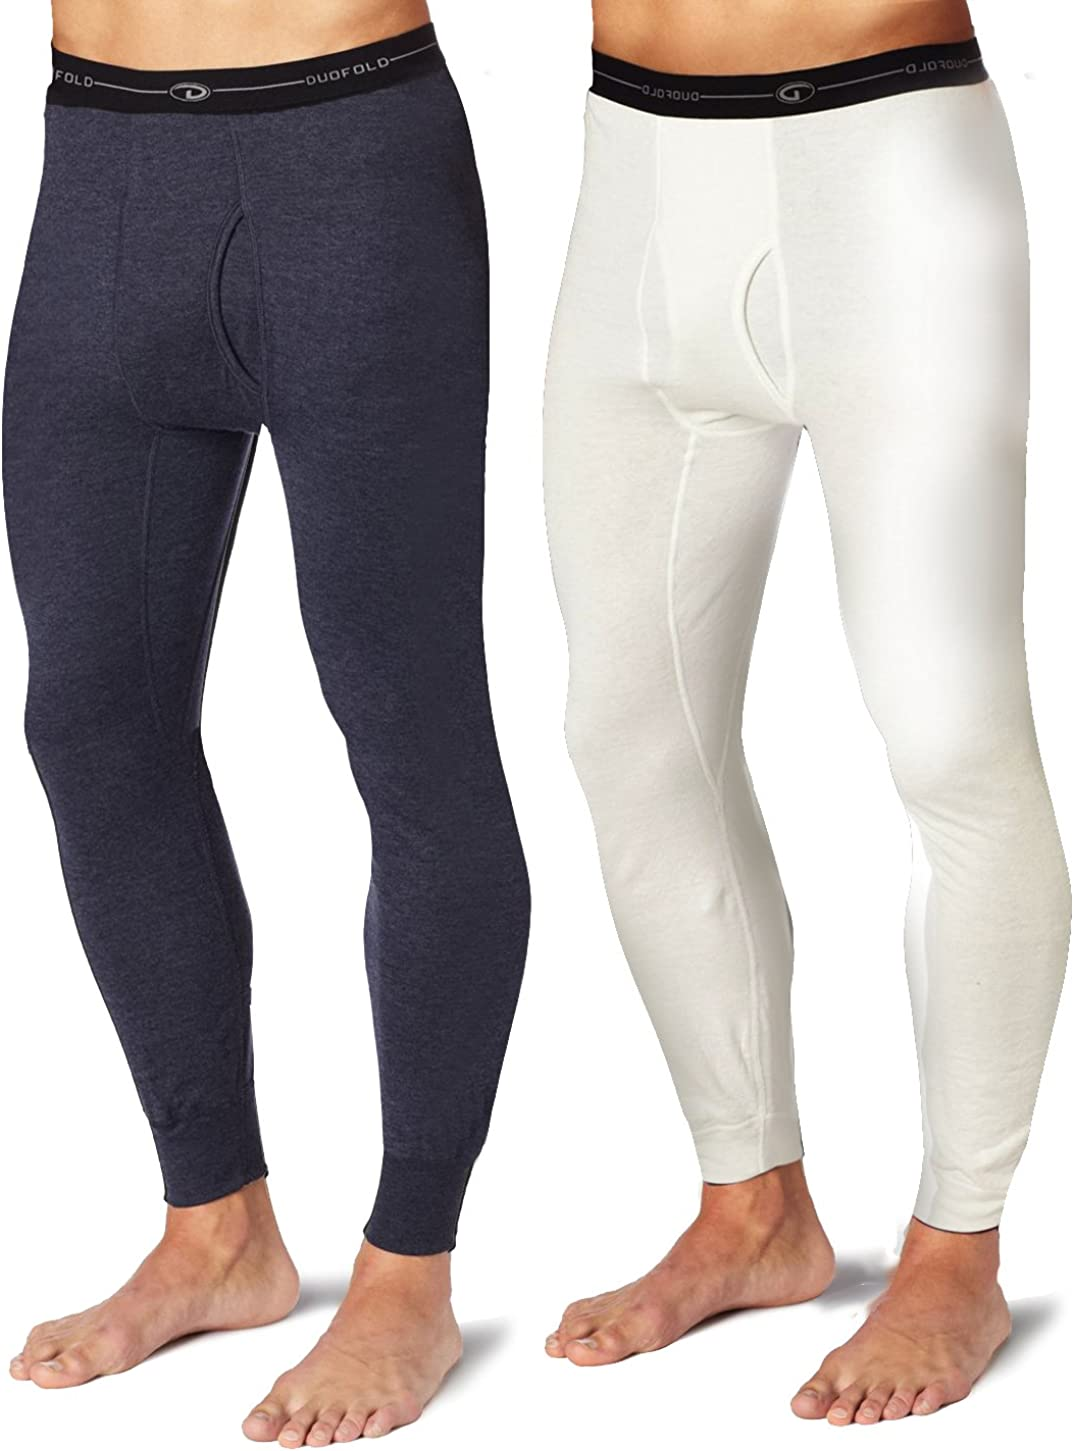 Duofold KMW2 Men's Mid Weight Wicking Thermal Pant 1 Navy + 1 Winter White